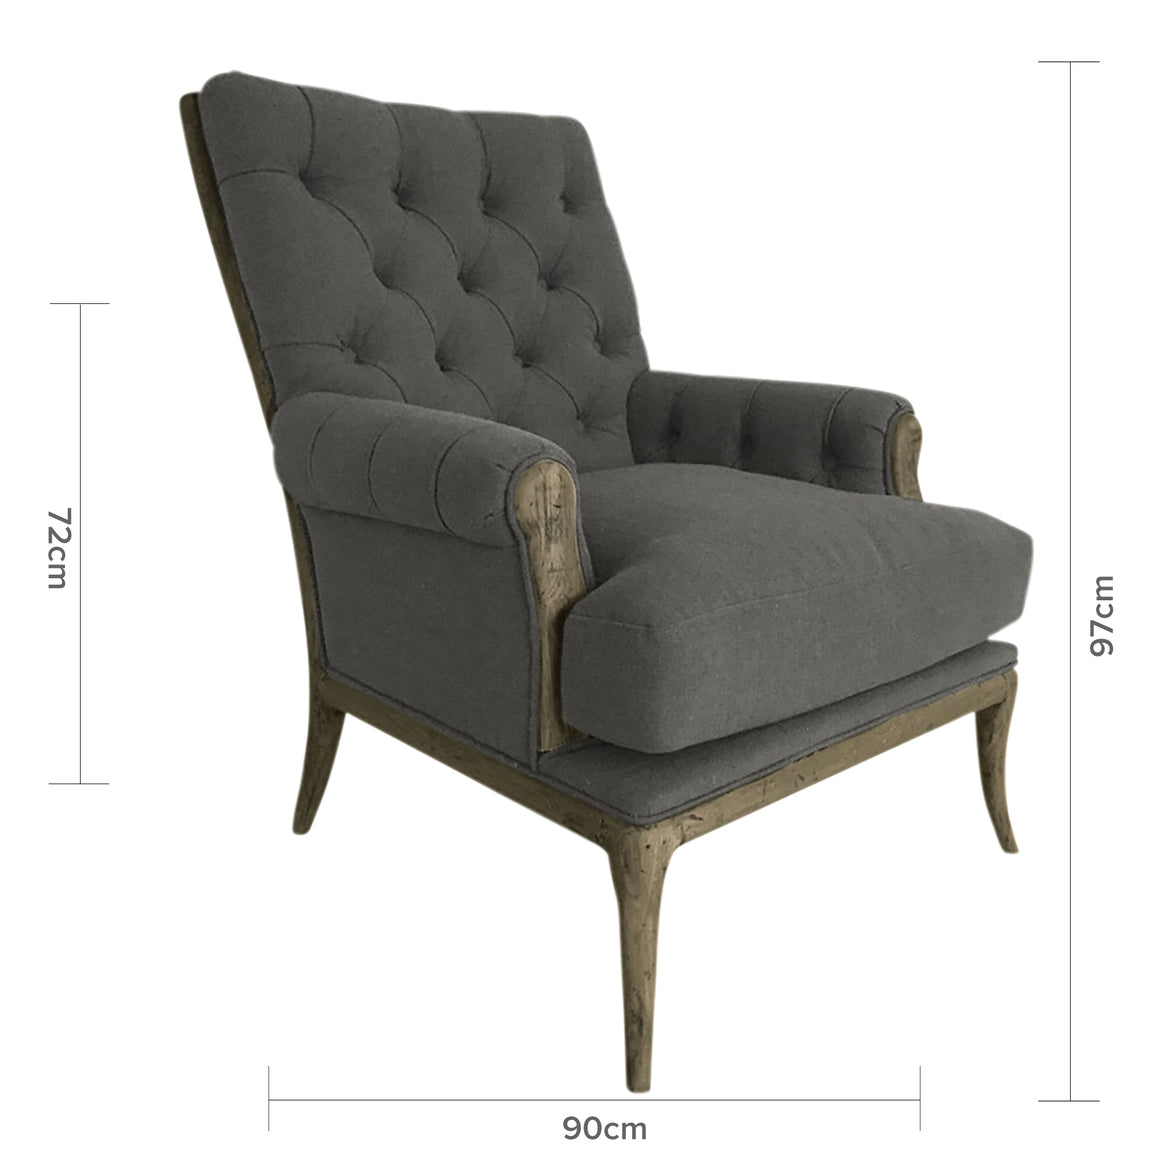 STORM GREY LINEN ARMCHAIR WITH OAK LEGS